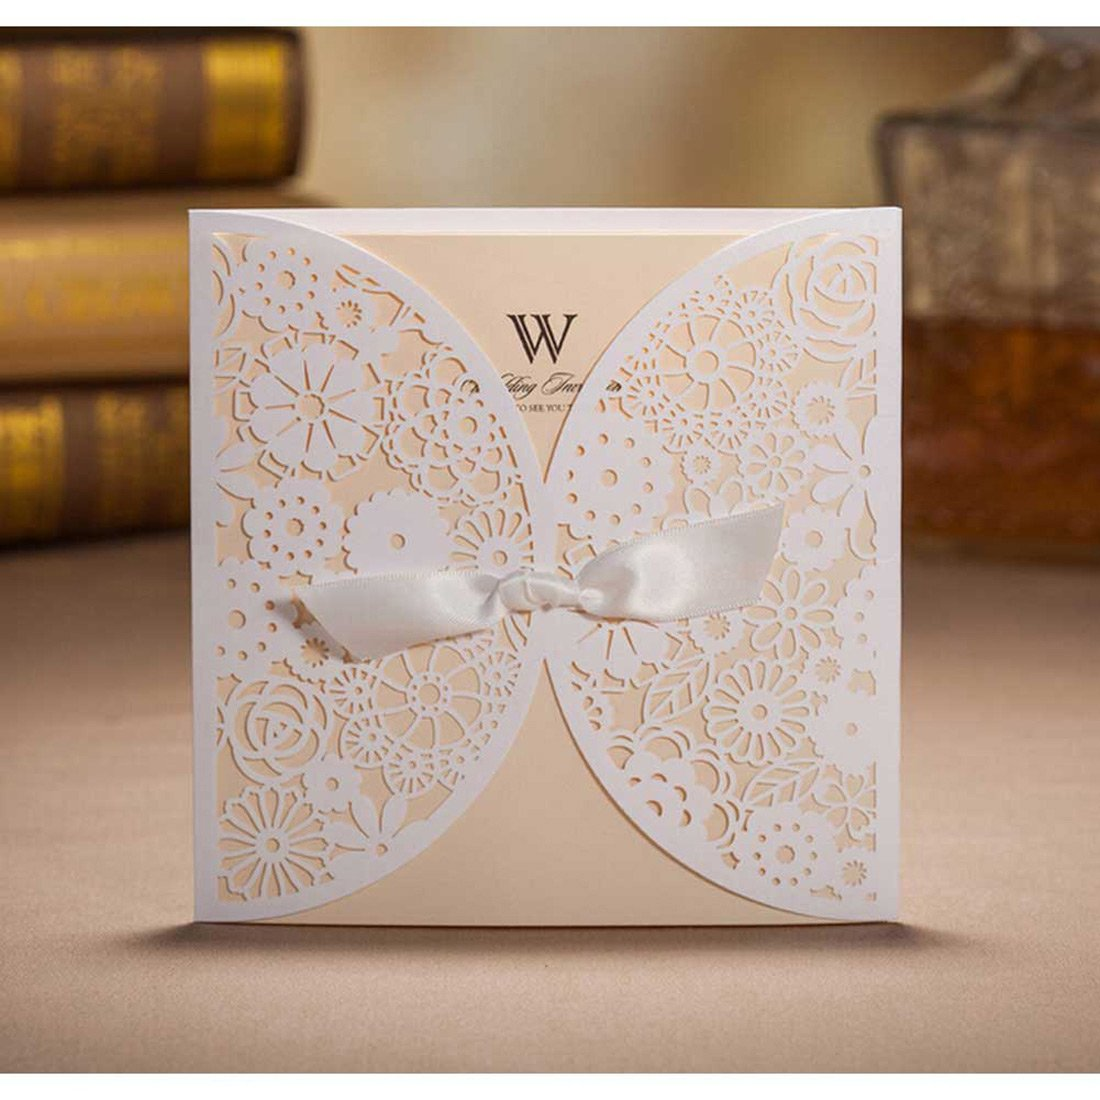 Amazon wishmade 50 count set laser cut invitations cards kits amazon wishmade 50 count set laser cut invitations cards kits white for wedding bridal shower birthday with ribbon tri fold printable paper and monicamarmolfo Choice Image